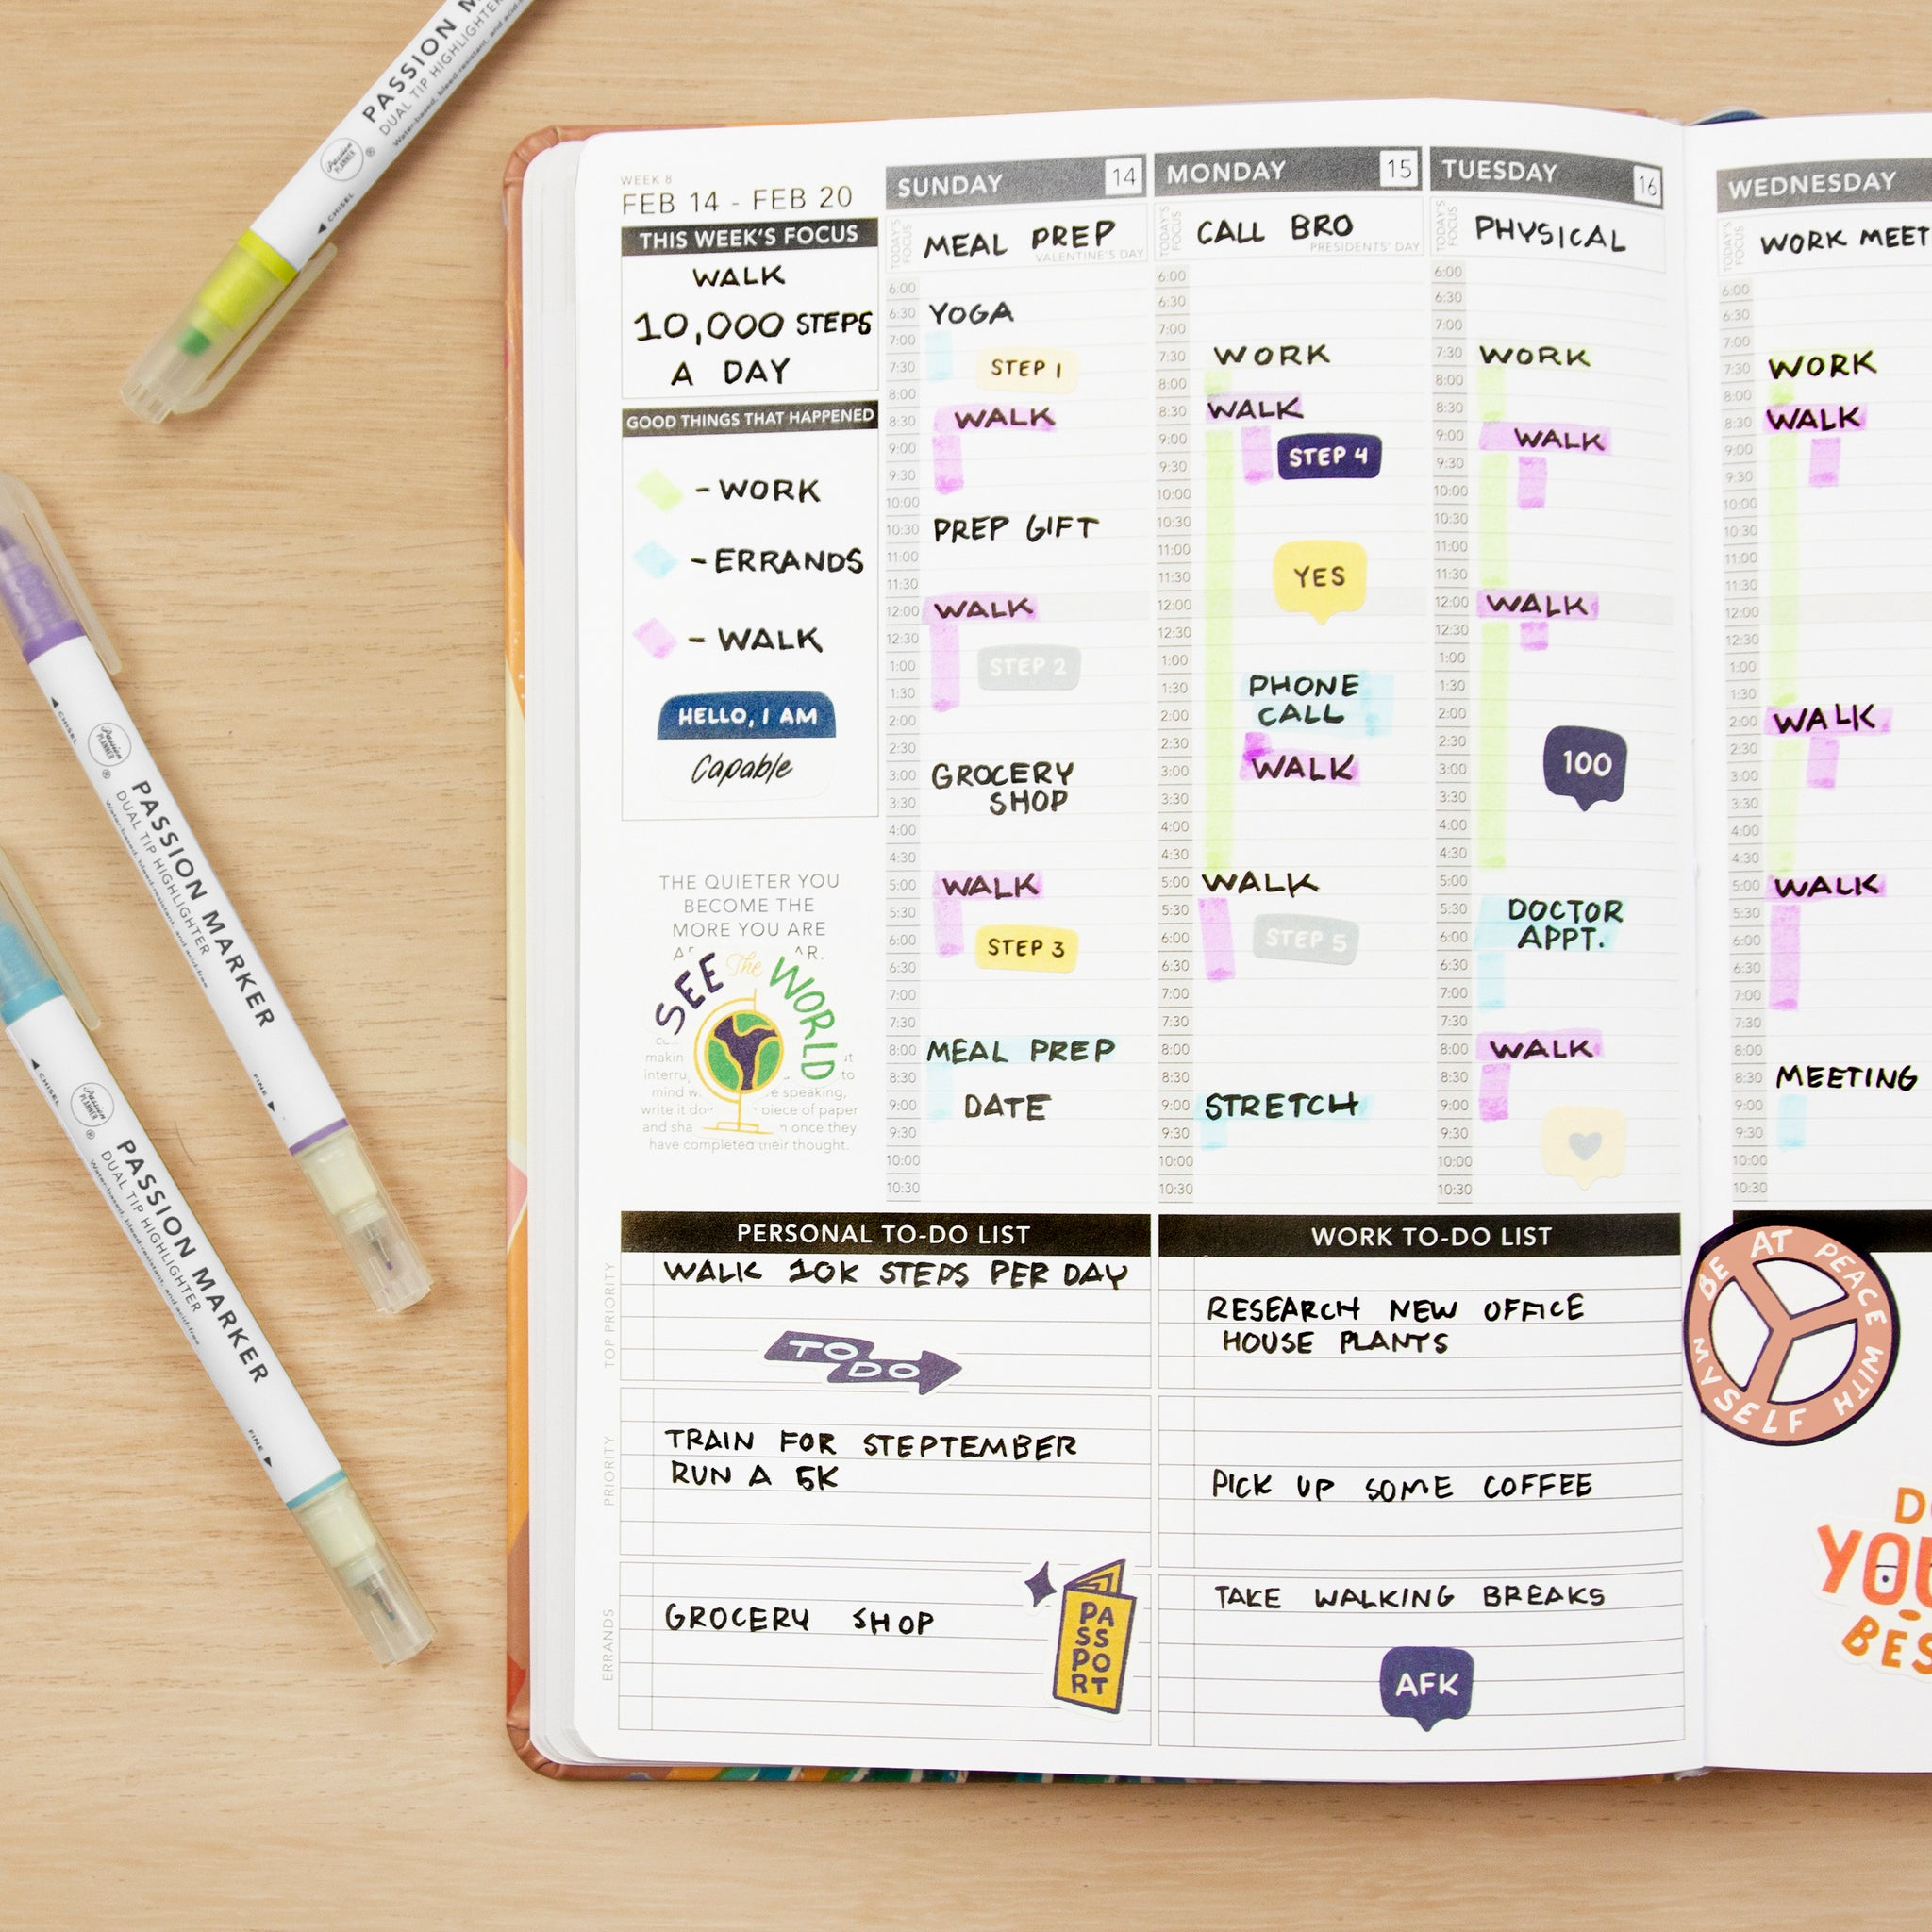 Passion Planner Weekly Layout: Schedule walks throughout your schedule and make it your focus for the week to reach 10K steps daily.